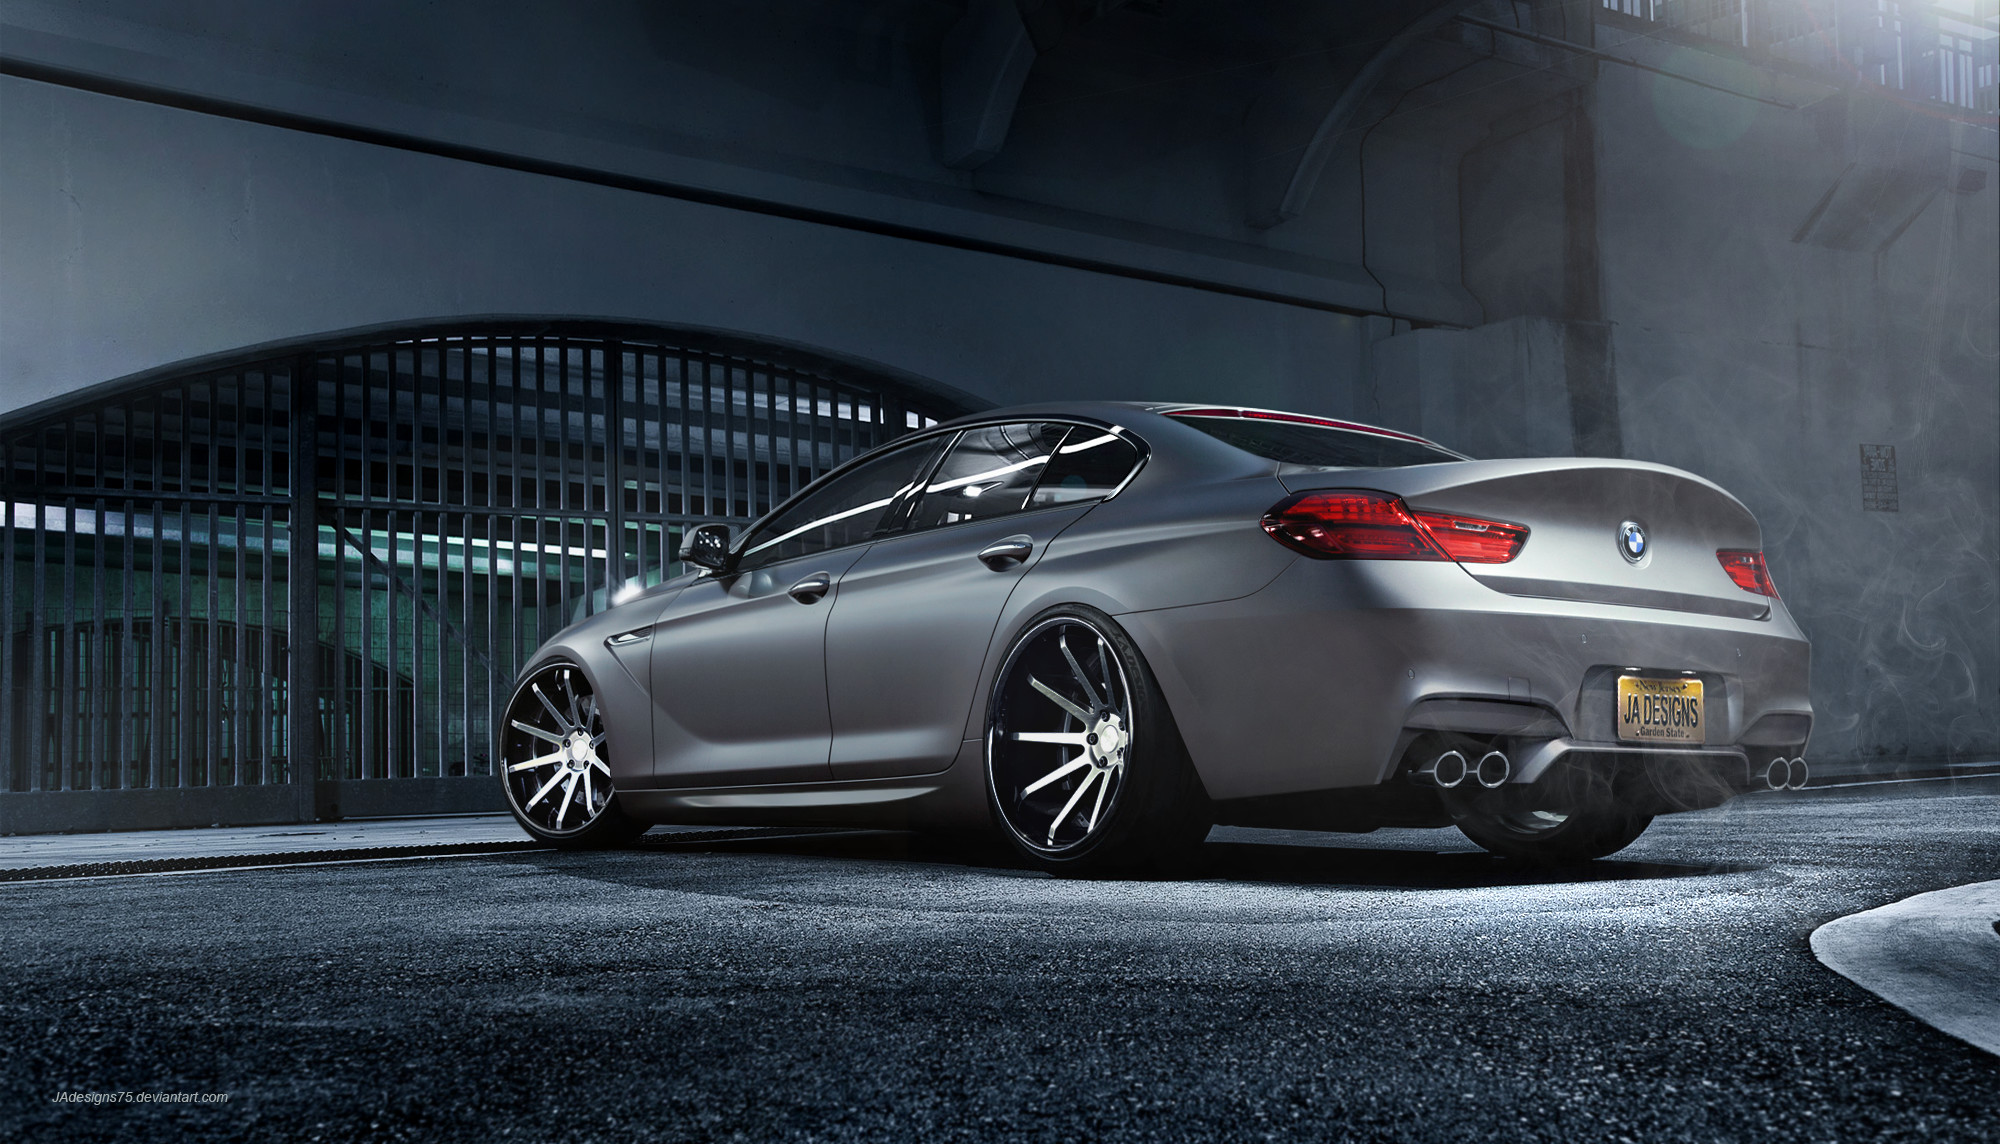 BMW 6 series Gran Coupe by JAdesigns75